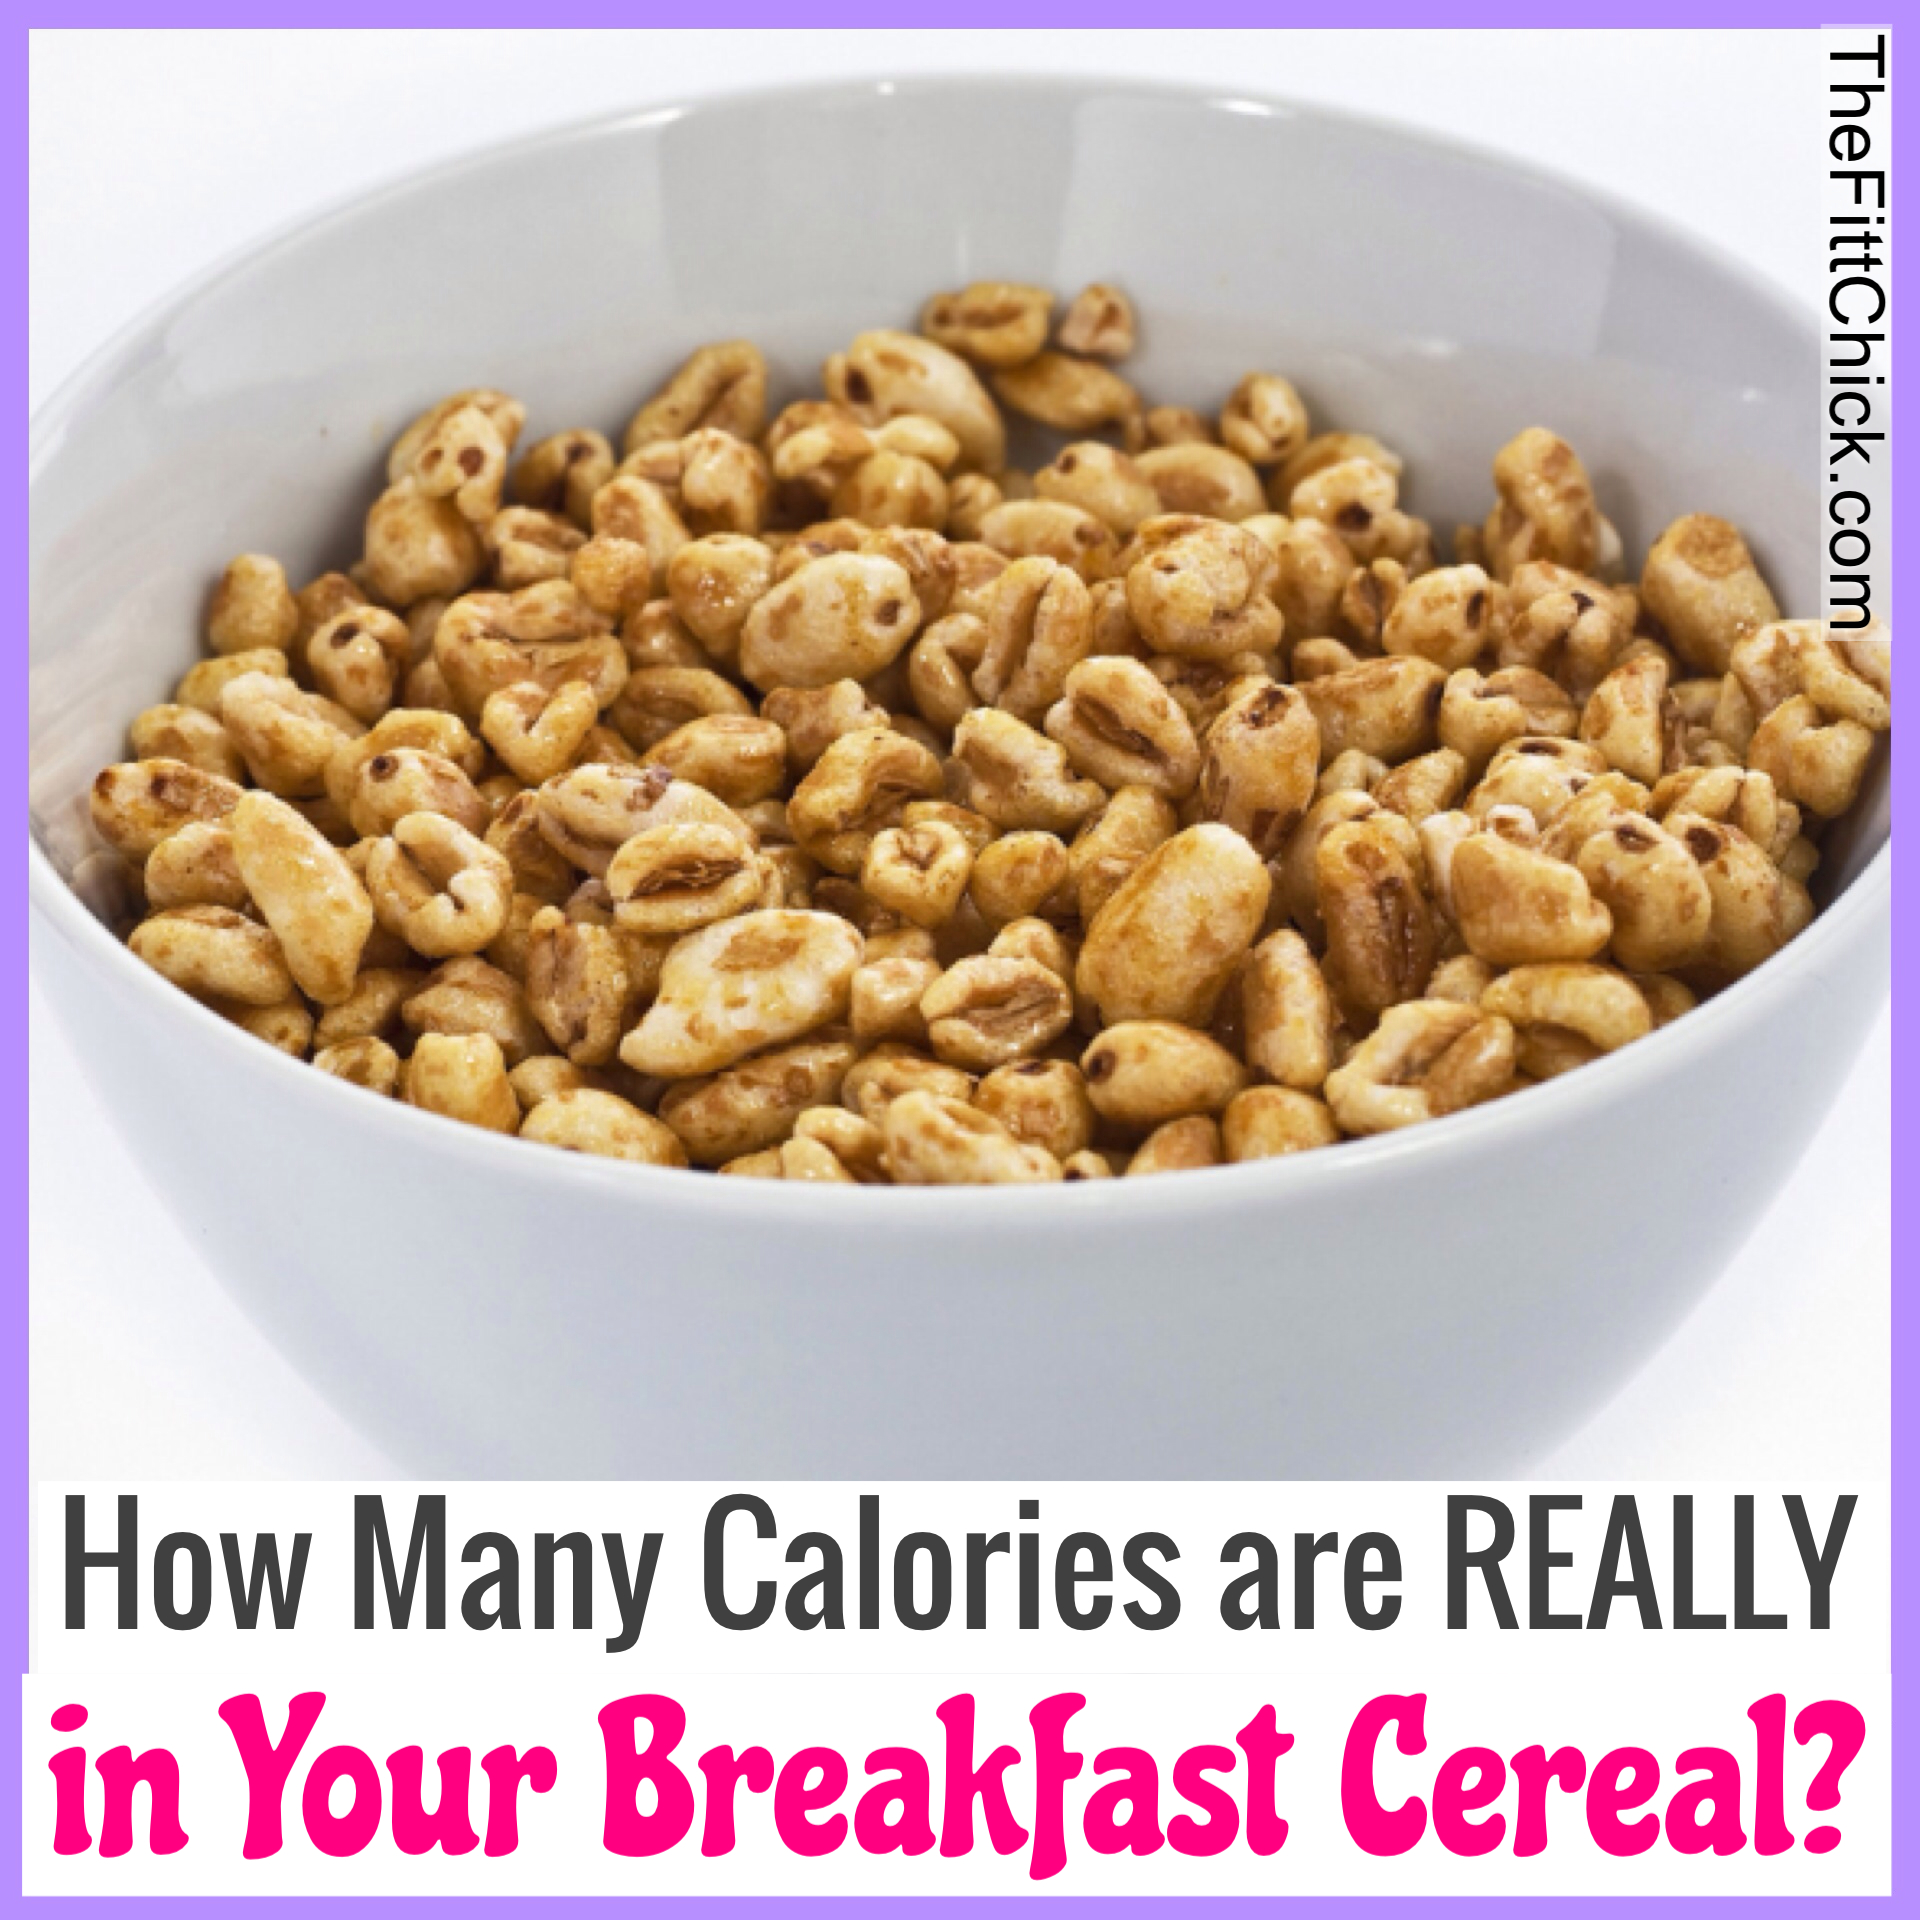 Your Bowl Of Cereal May Have 700 Calories!